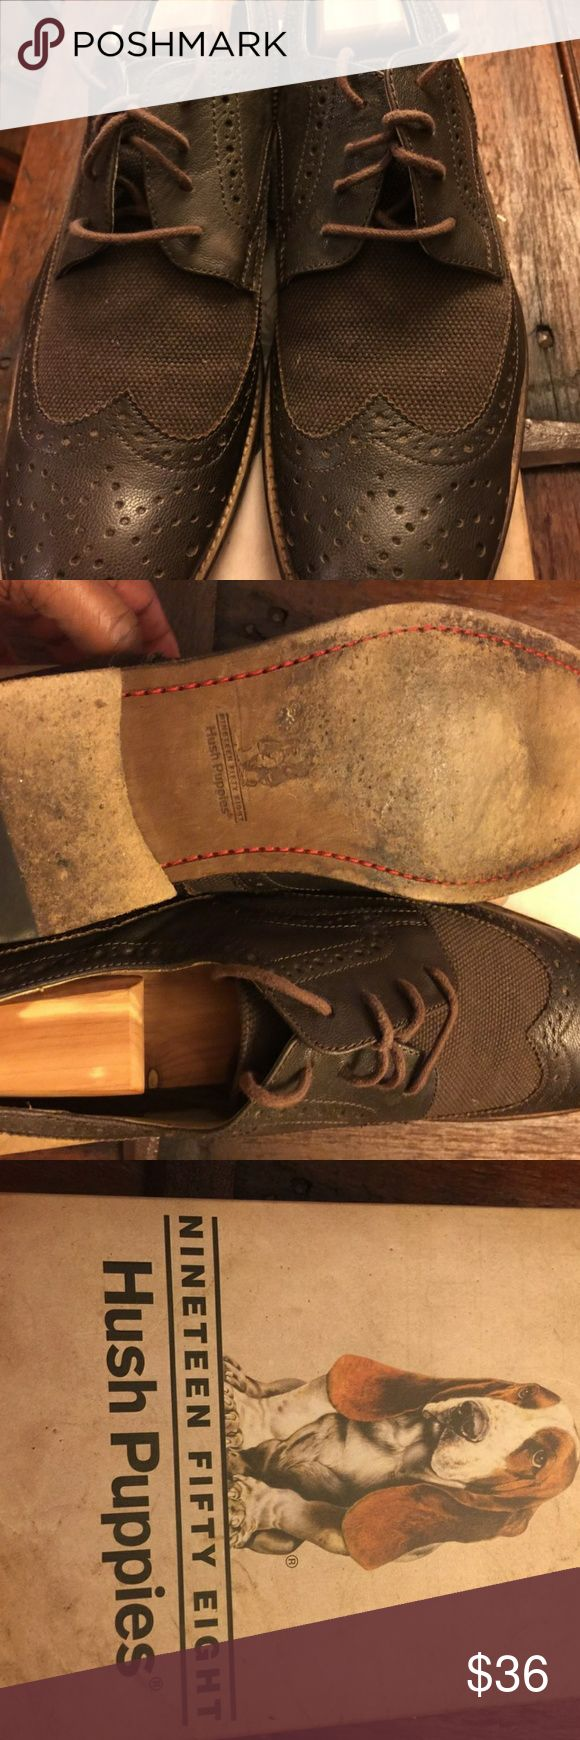 Hush Puppies men's shoes 10.5 In good used condition; size 10.5 Hush Puppies Hush Puppies Shoes